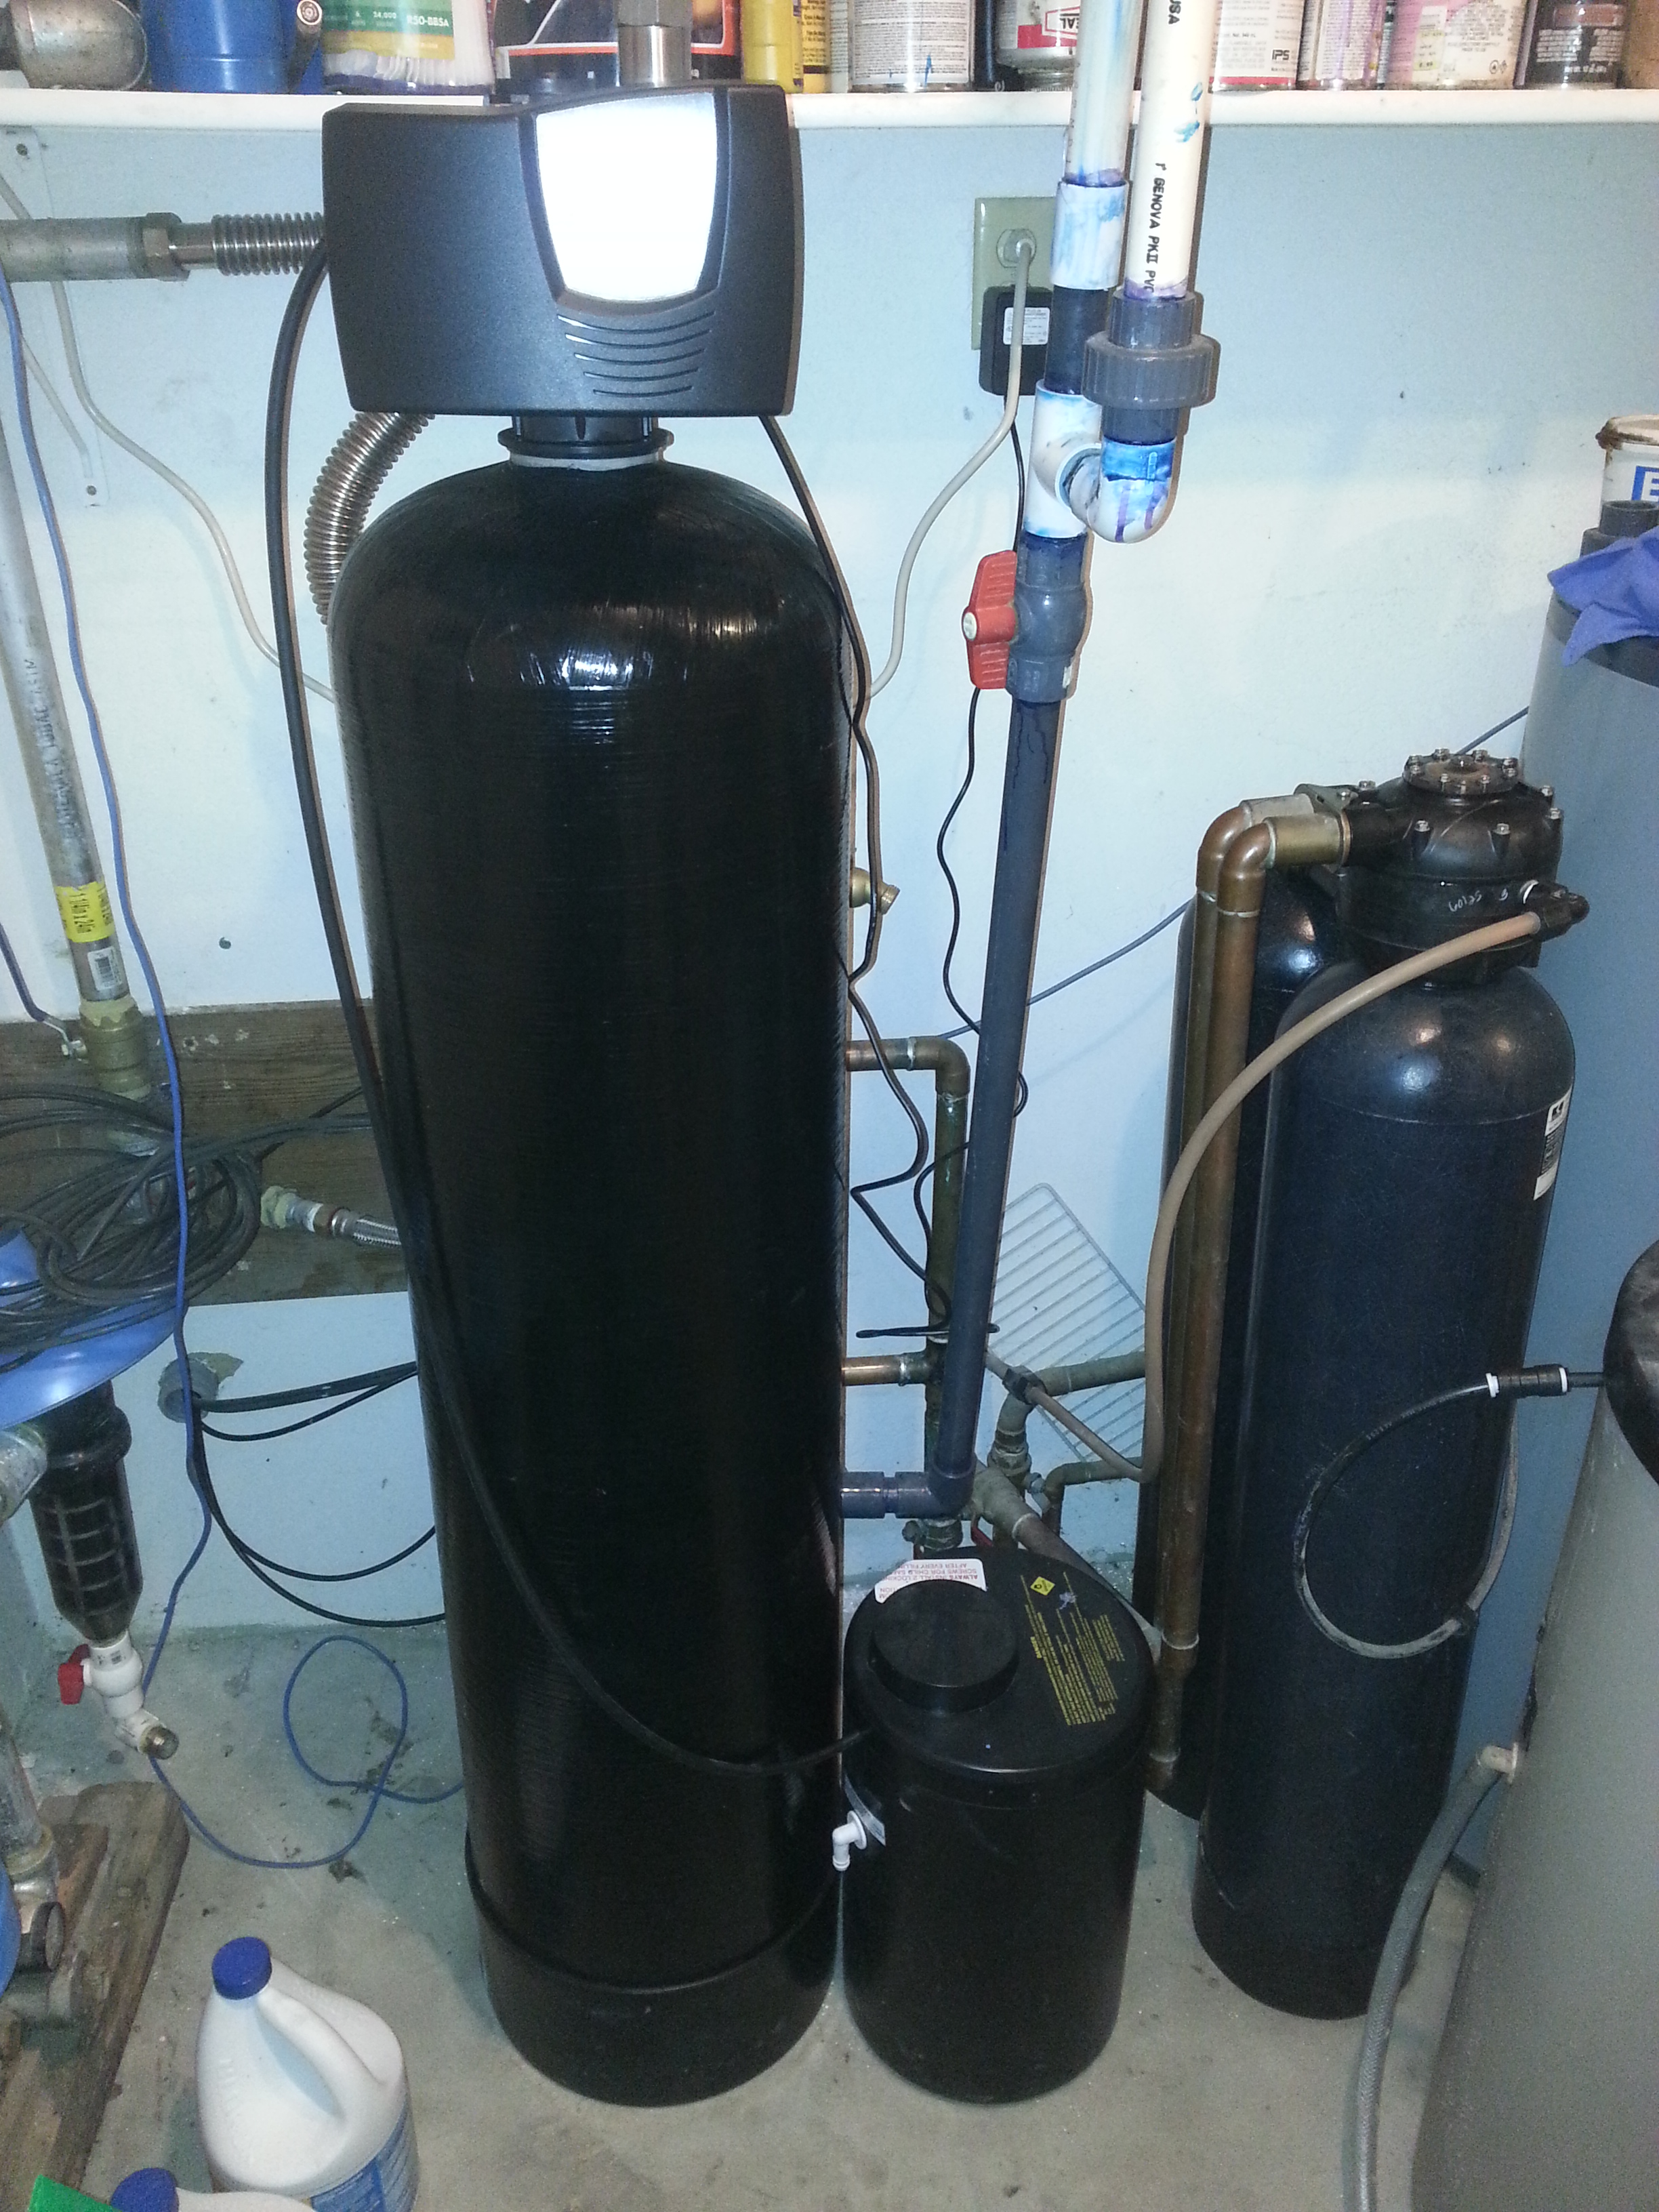 Anyone Suffering from Staining Needs One of These Systems